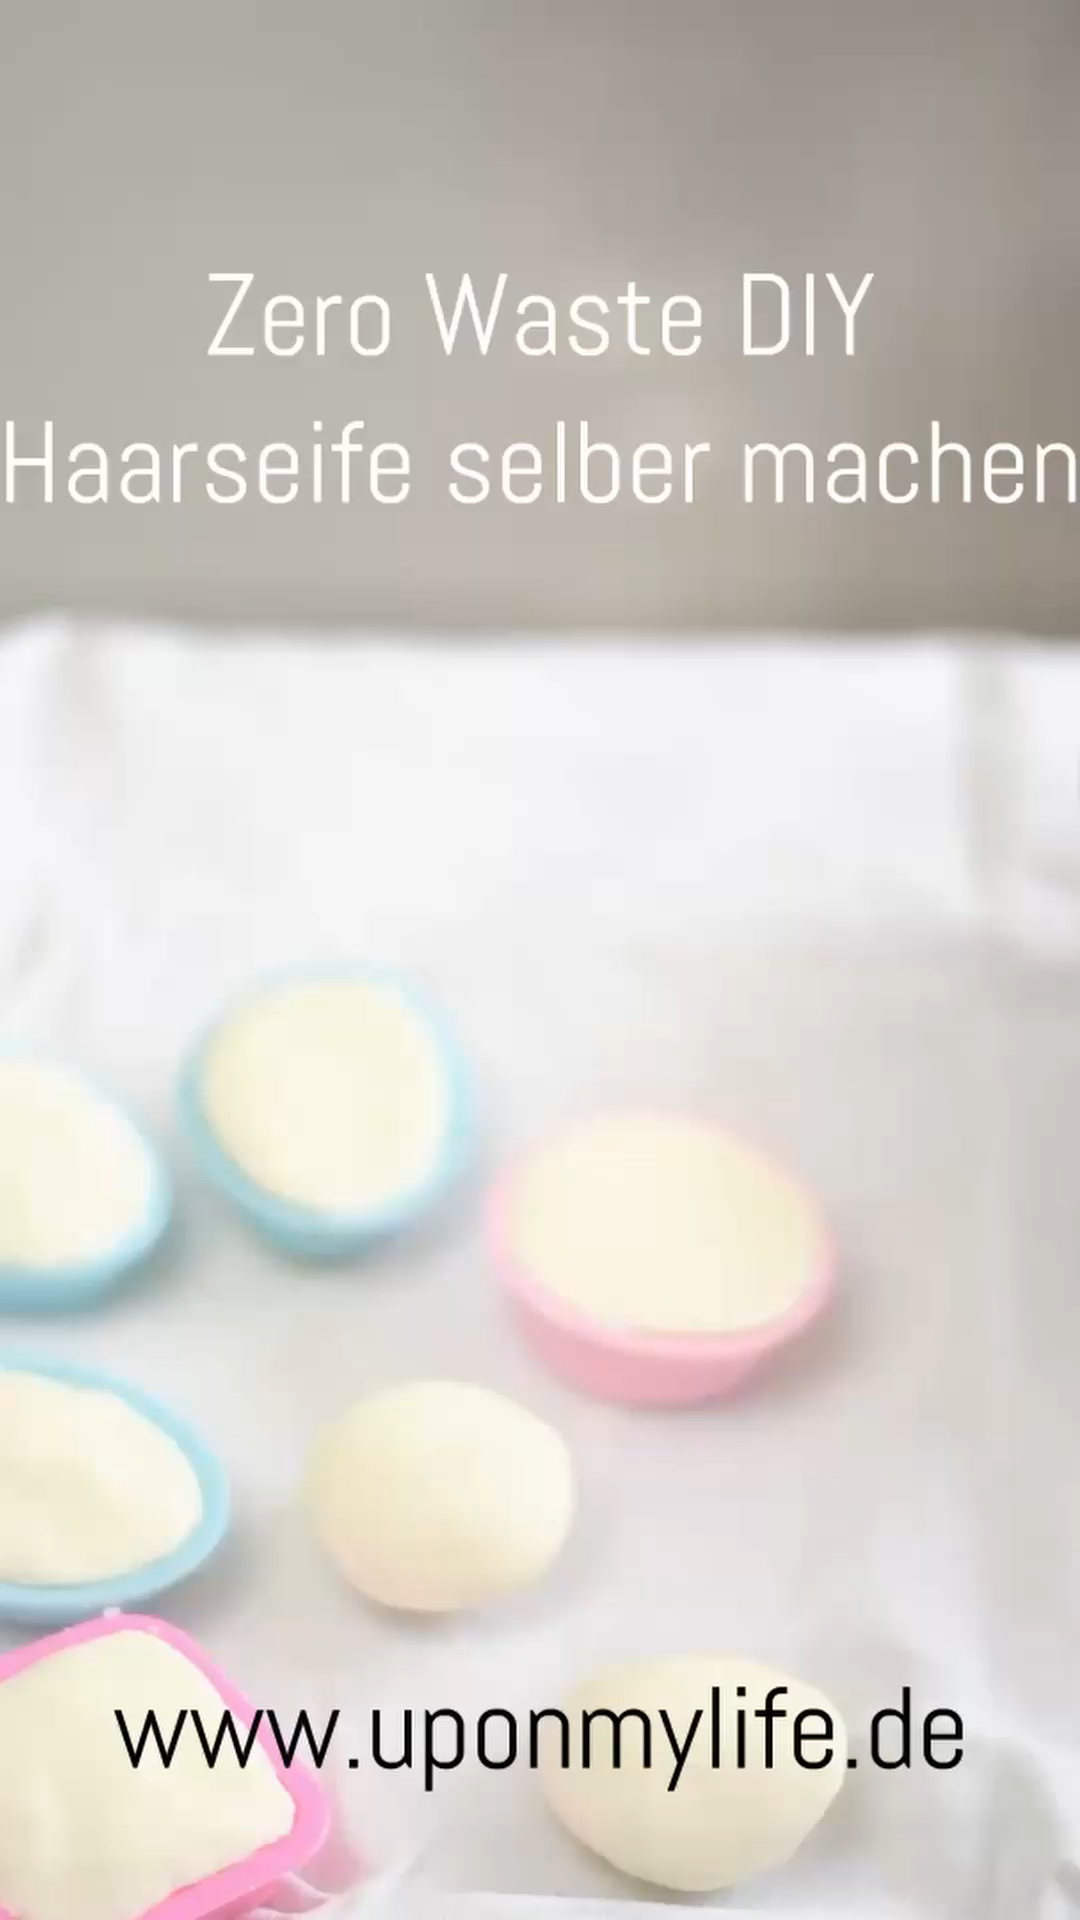 Photo of Zero Waste DIY Haarseife selber machen